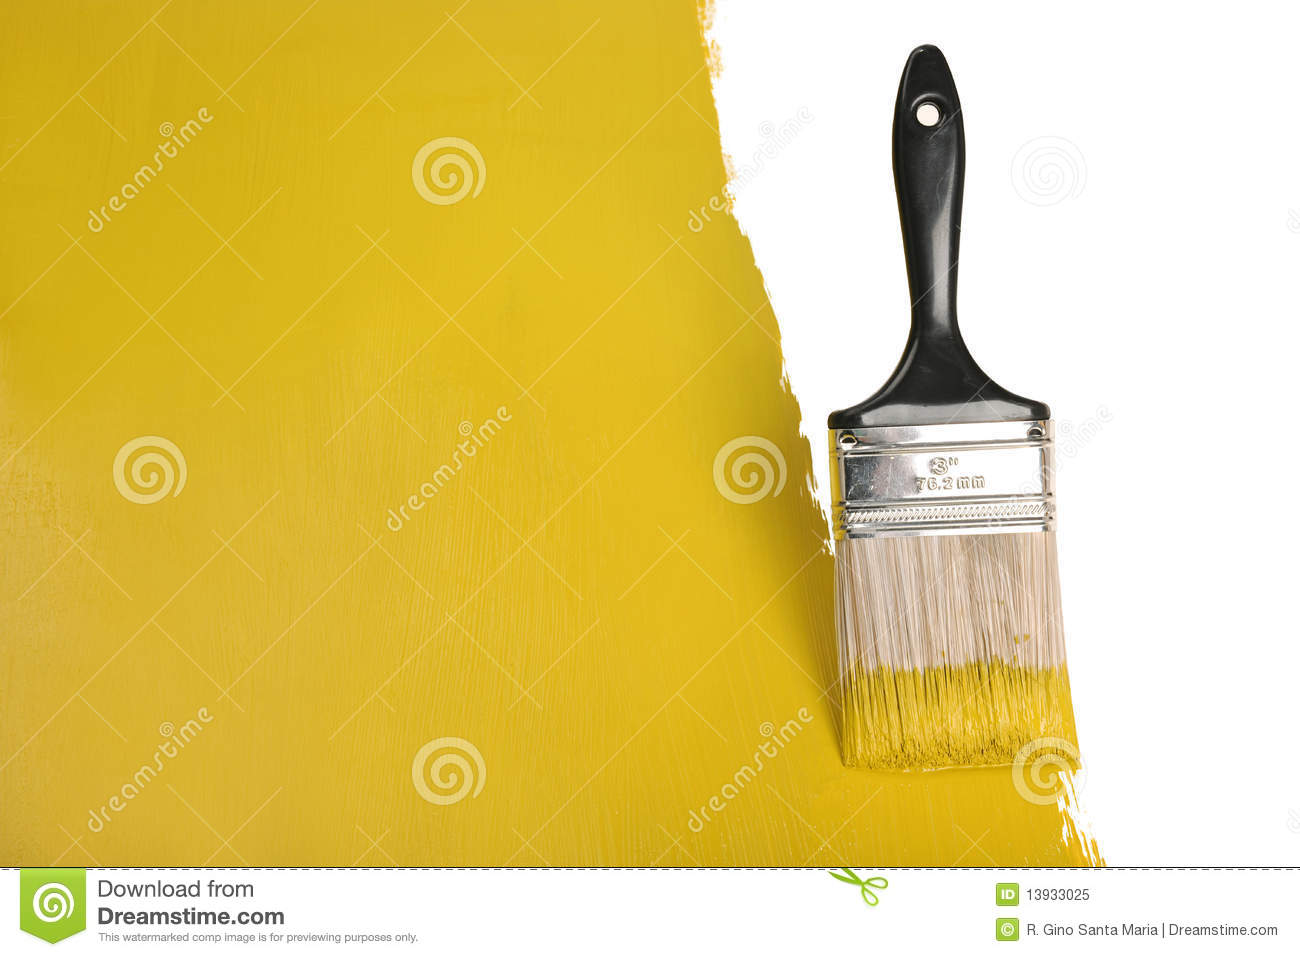 Brush Painting Wall With Yellow Paint Stock Image - Image of paint ...